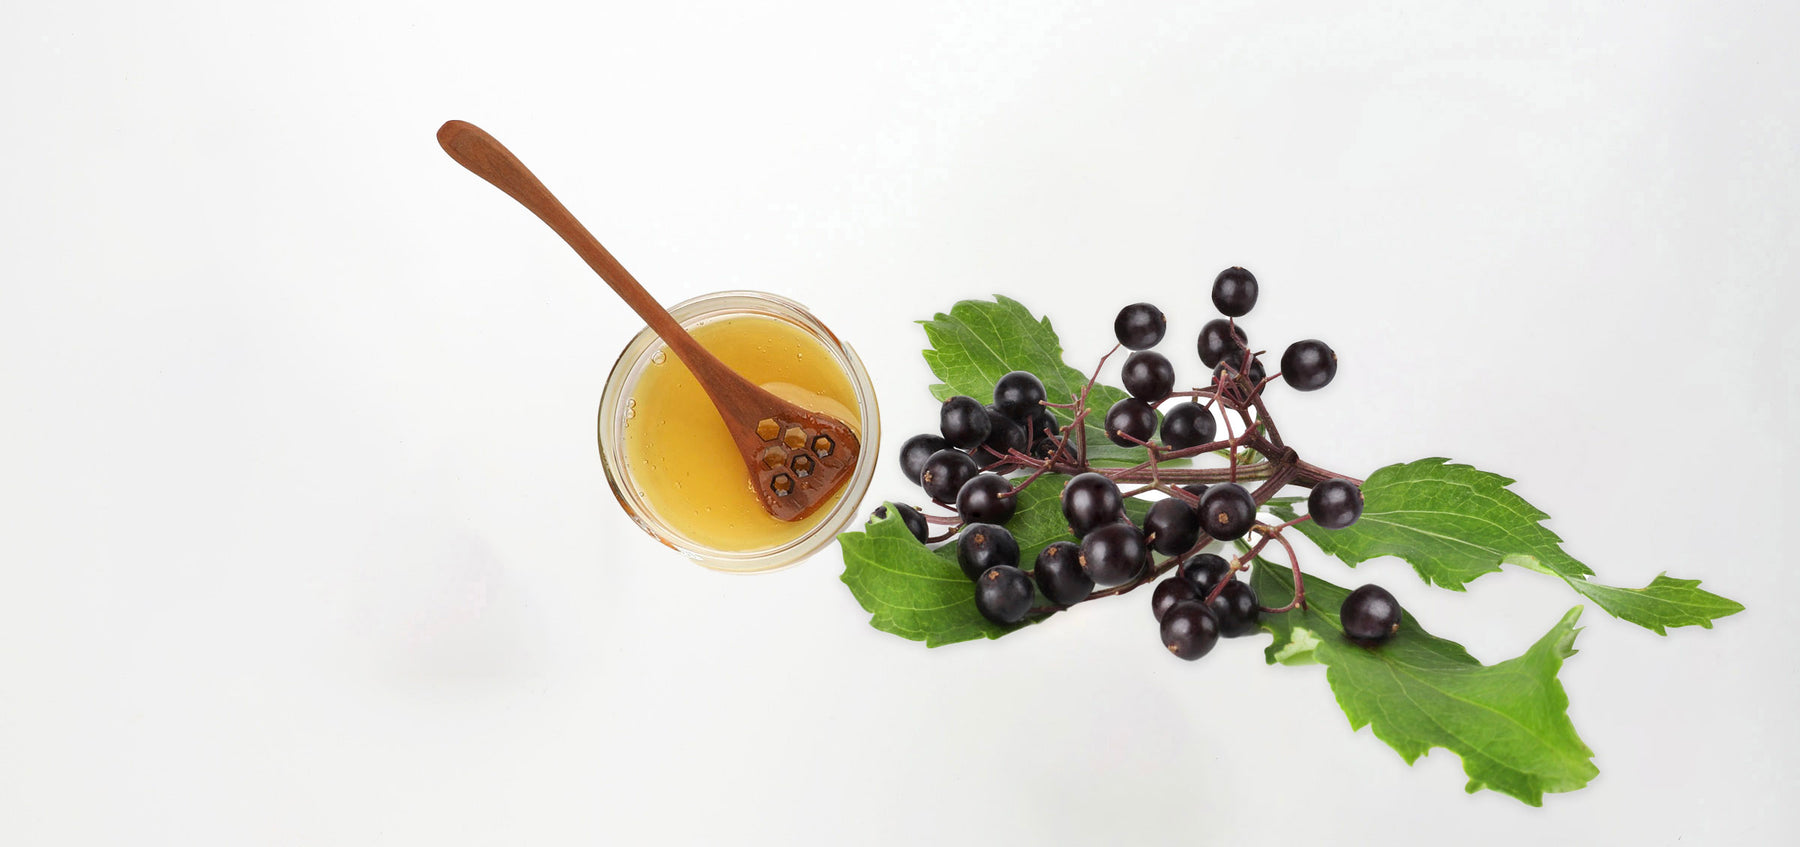 Honey and elderberries